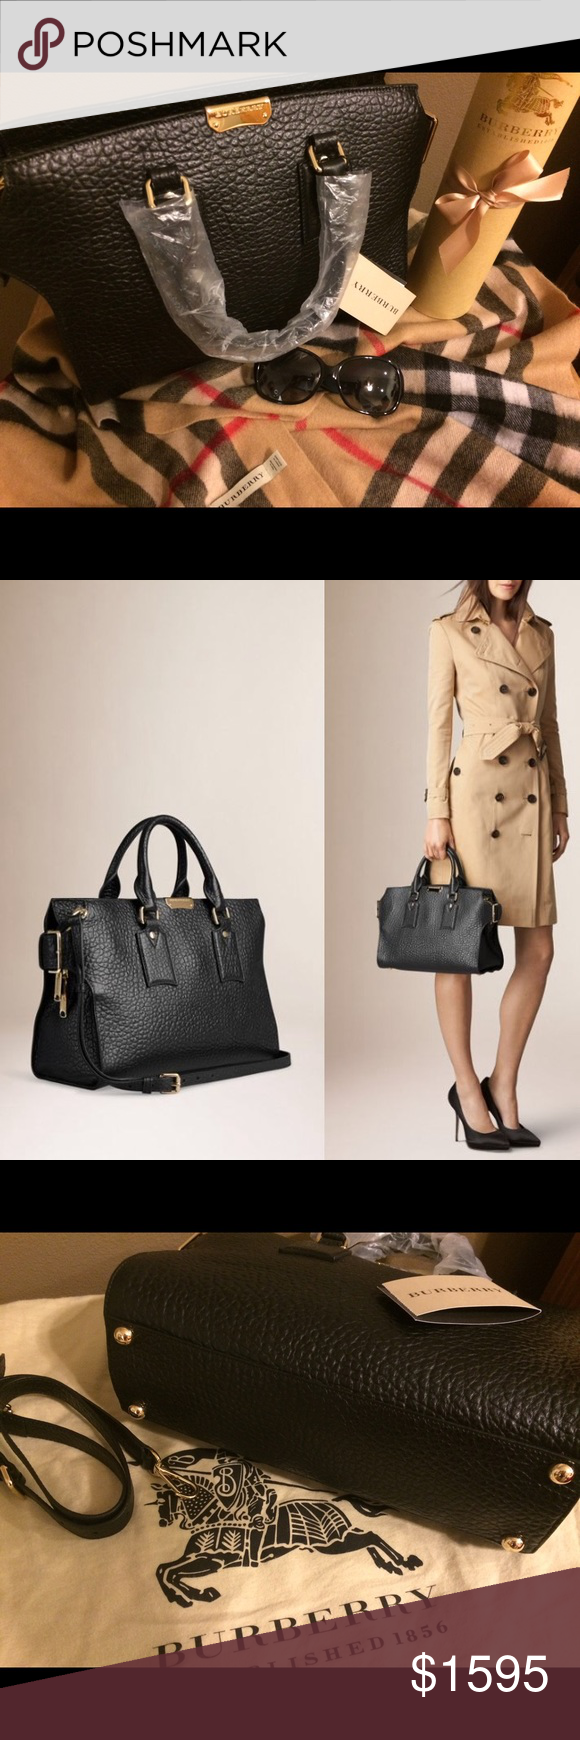 Authentic Burberry Clifton Signature Grain 👜 This brand new, with tags Clifton is a terrific piece to any collection!  The signature grain leather with gold hardware is beautiful and Burberry doesn't miss a step in calling it out all throughout this bag.  Comes with strap and dust cover.  Feel free to look this up on Burberry. Style #39712361.  This was purchased/ picked up from Nordstrom today 🤗. Would consider trade for Chloe Marcie or Celine 👜👜 Burberry Bags Satchels